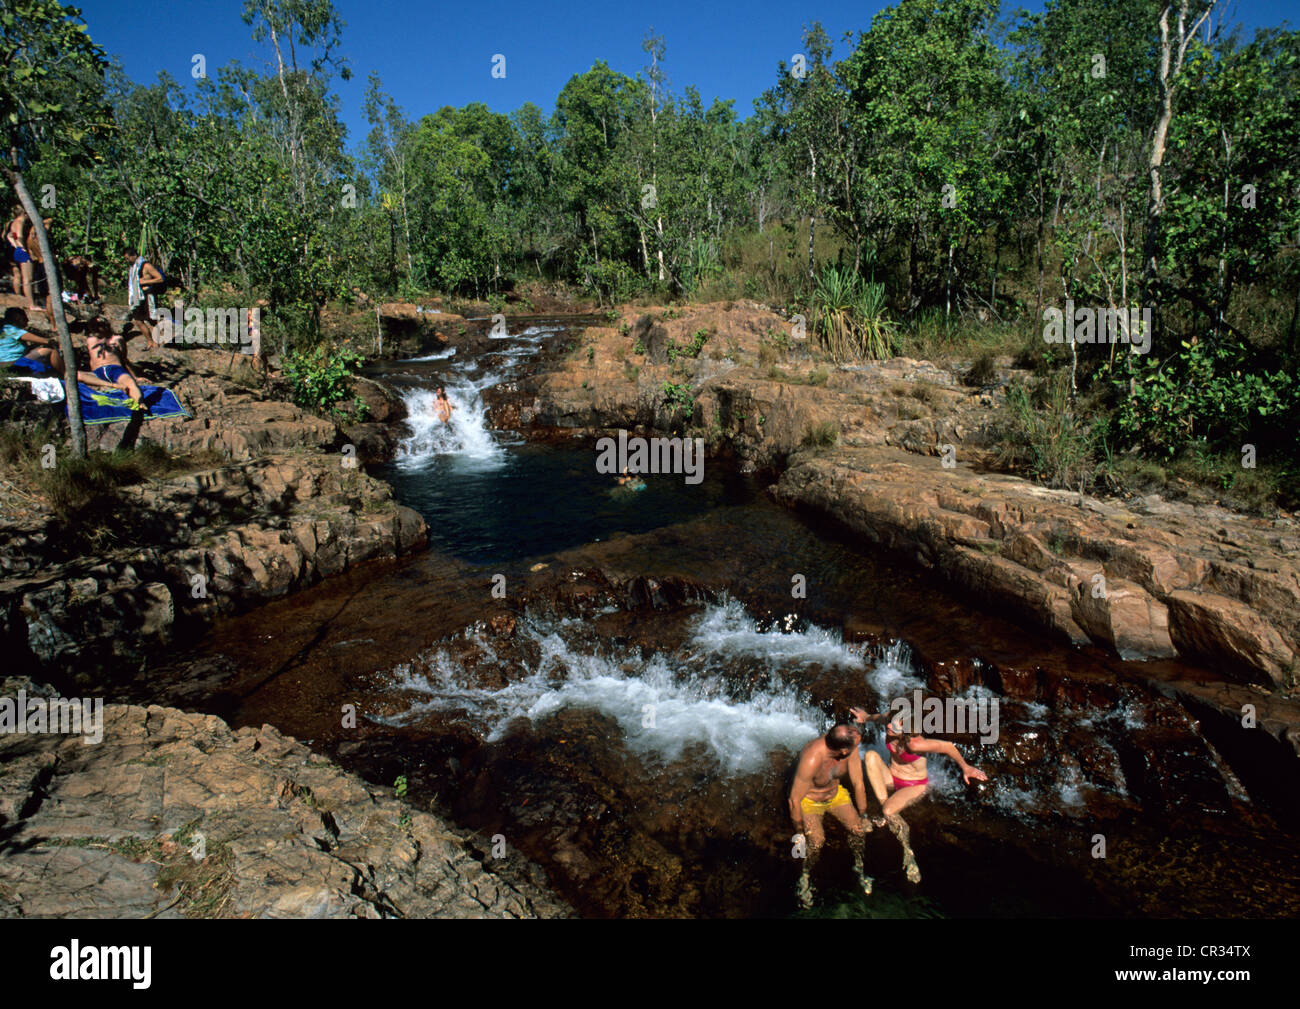 Australia, Northern Territory, Litchfield National Park, swimming in the Buley Rockhole waterfalls - Stock Image